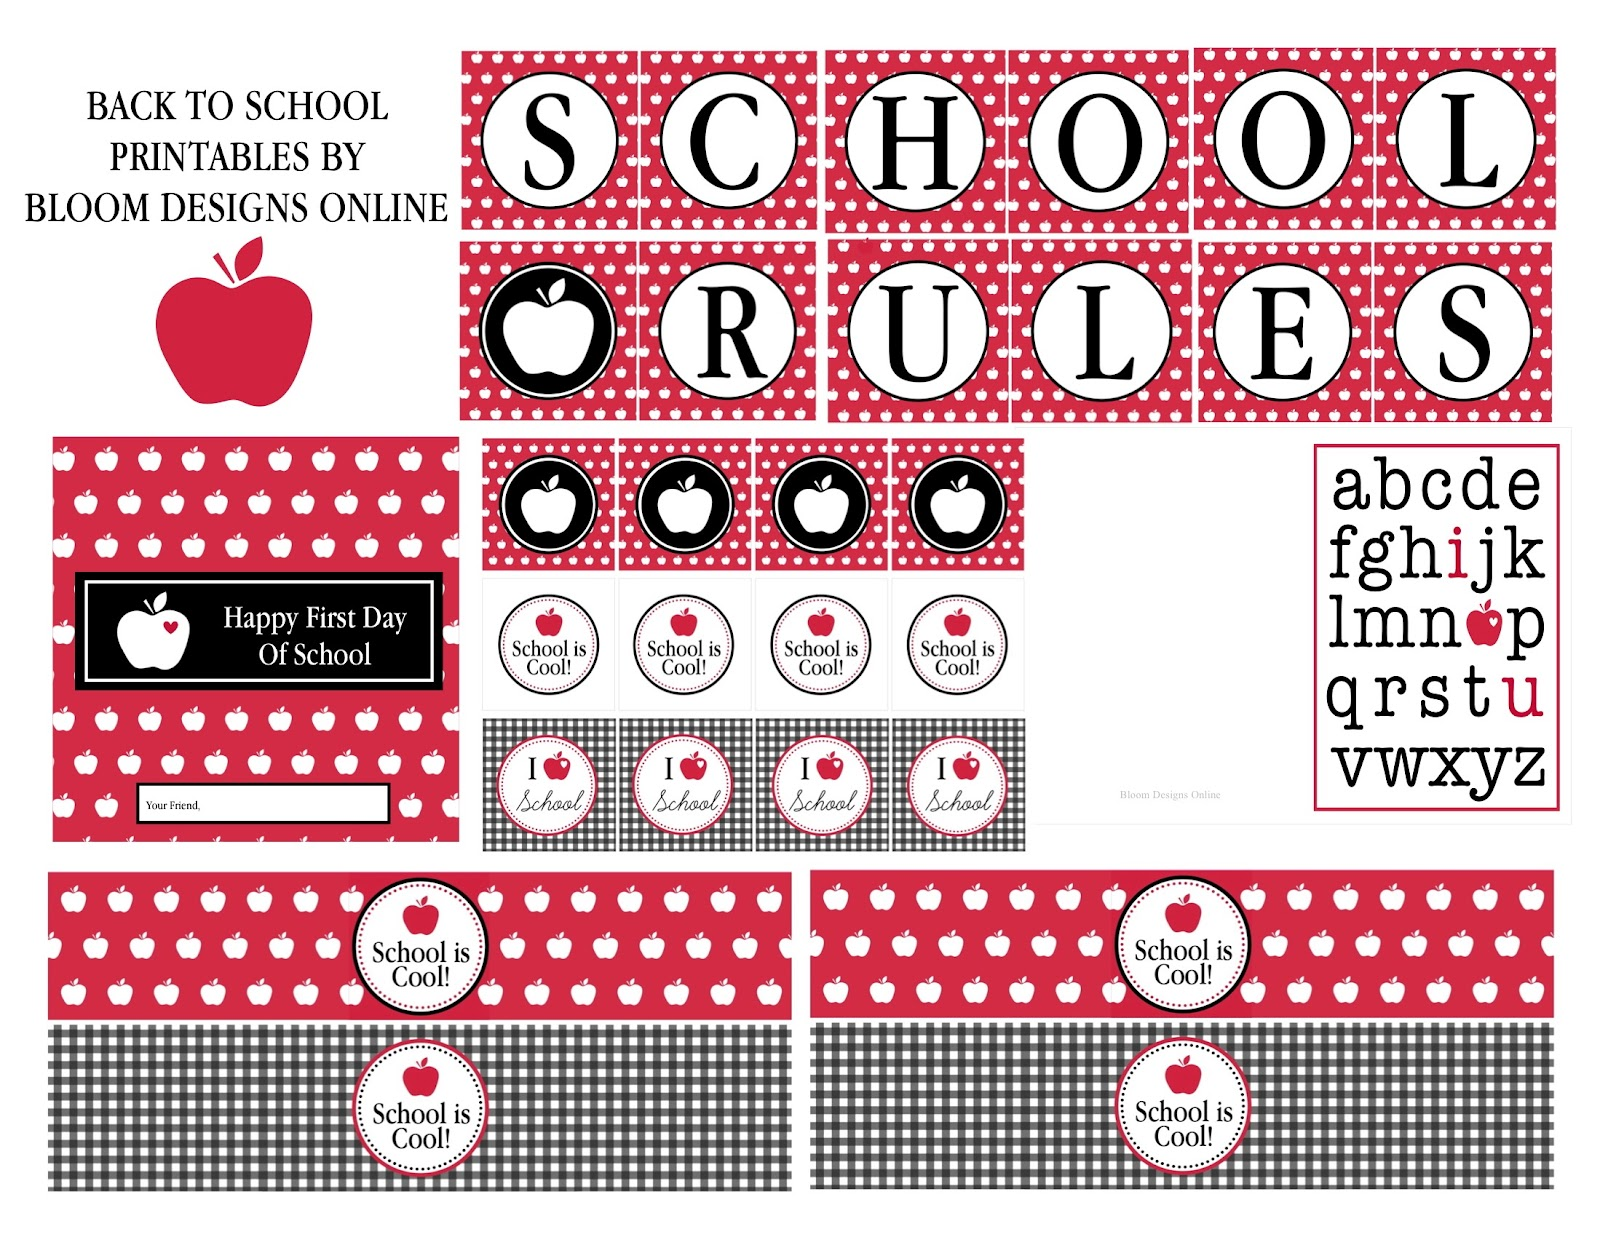 Bloom Designs Back To School Printables